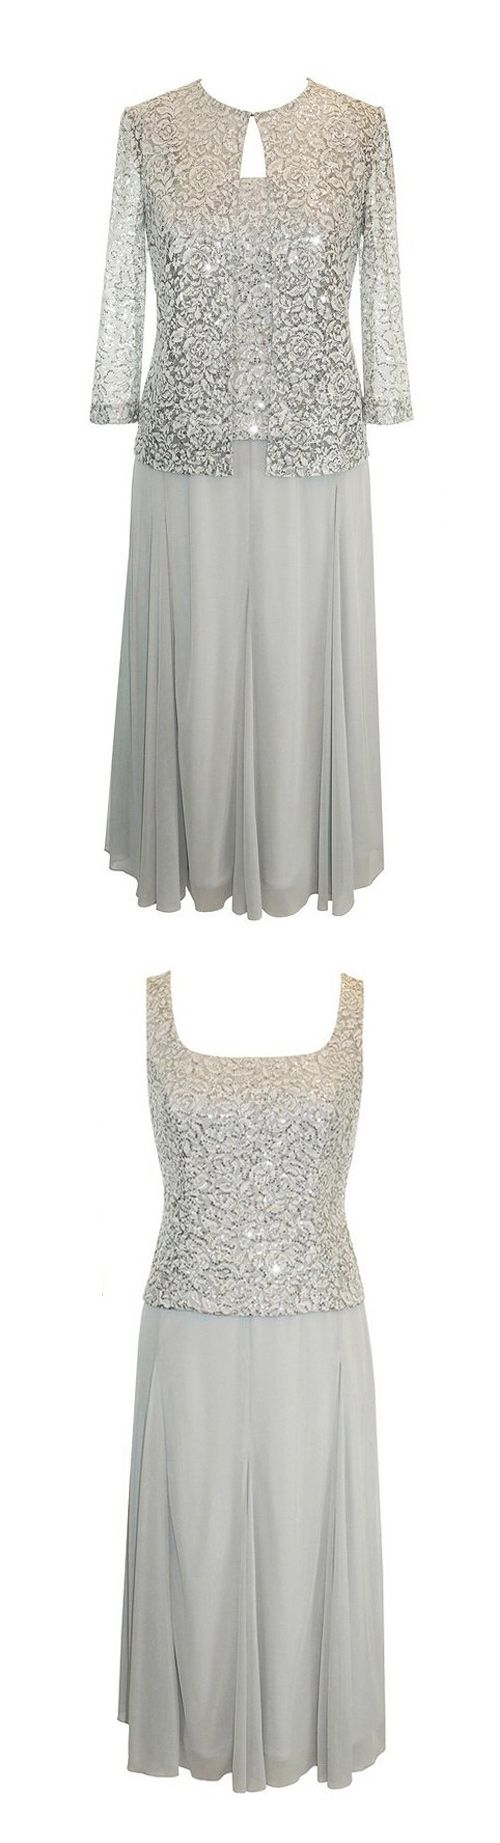 Elegant Square Plus Size Mother Of The Bride Dresses With Lace - Plus Size Jacket Dress For Wedding